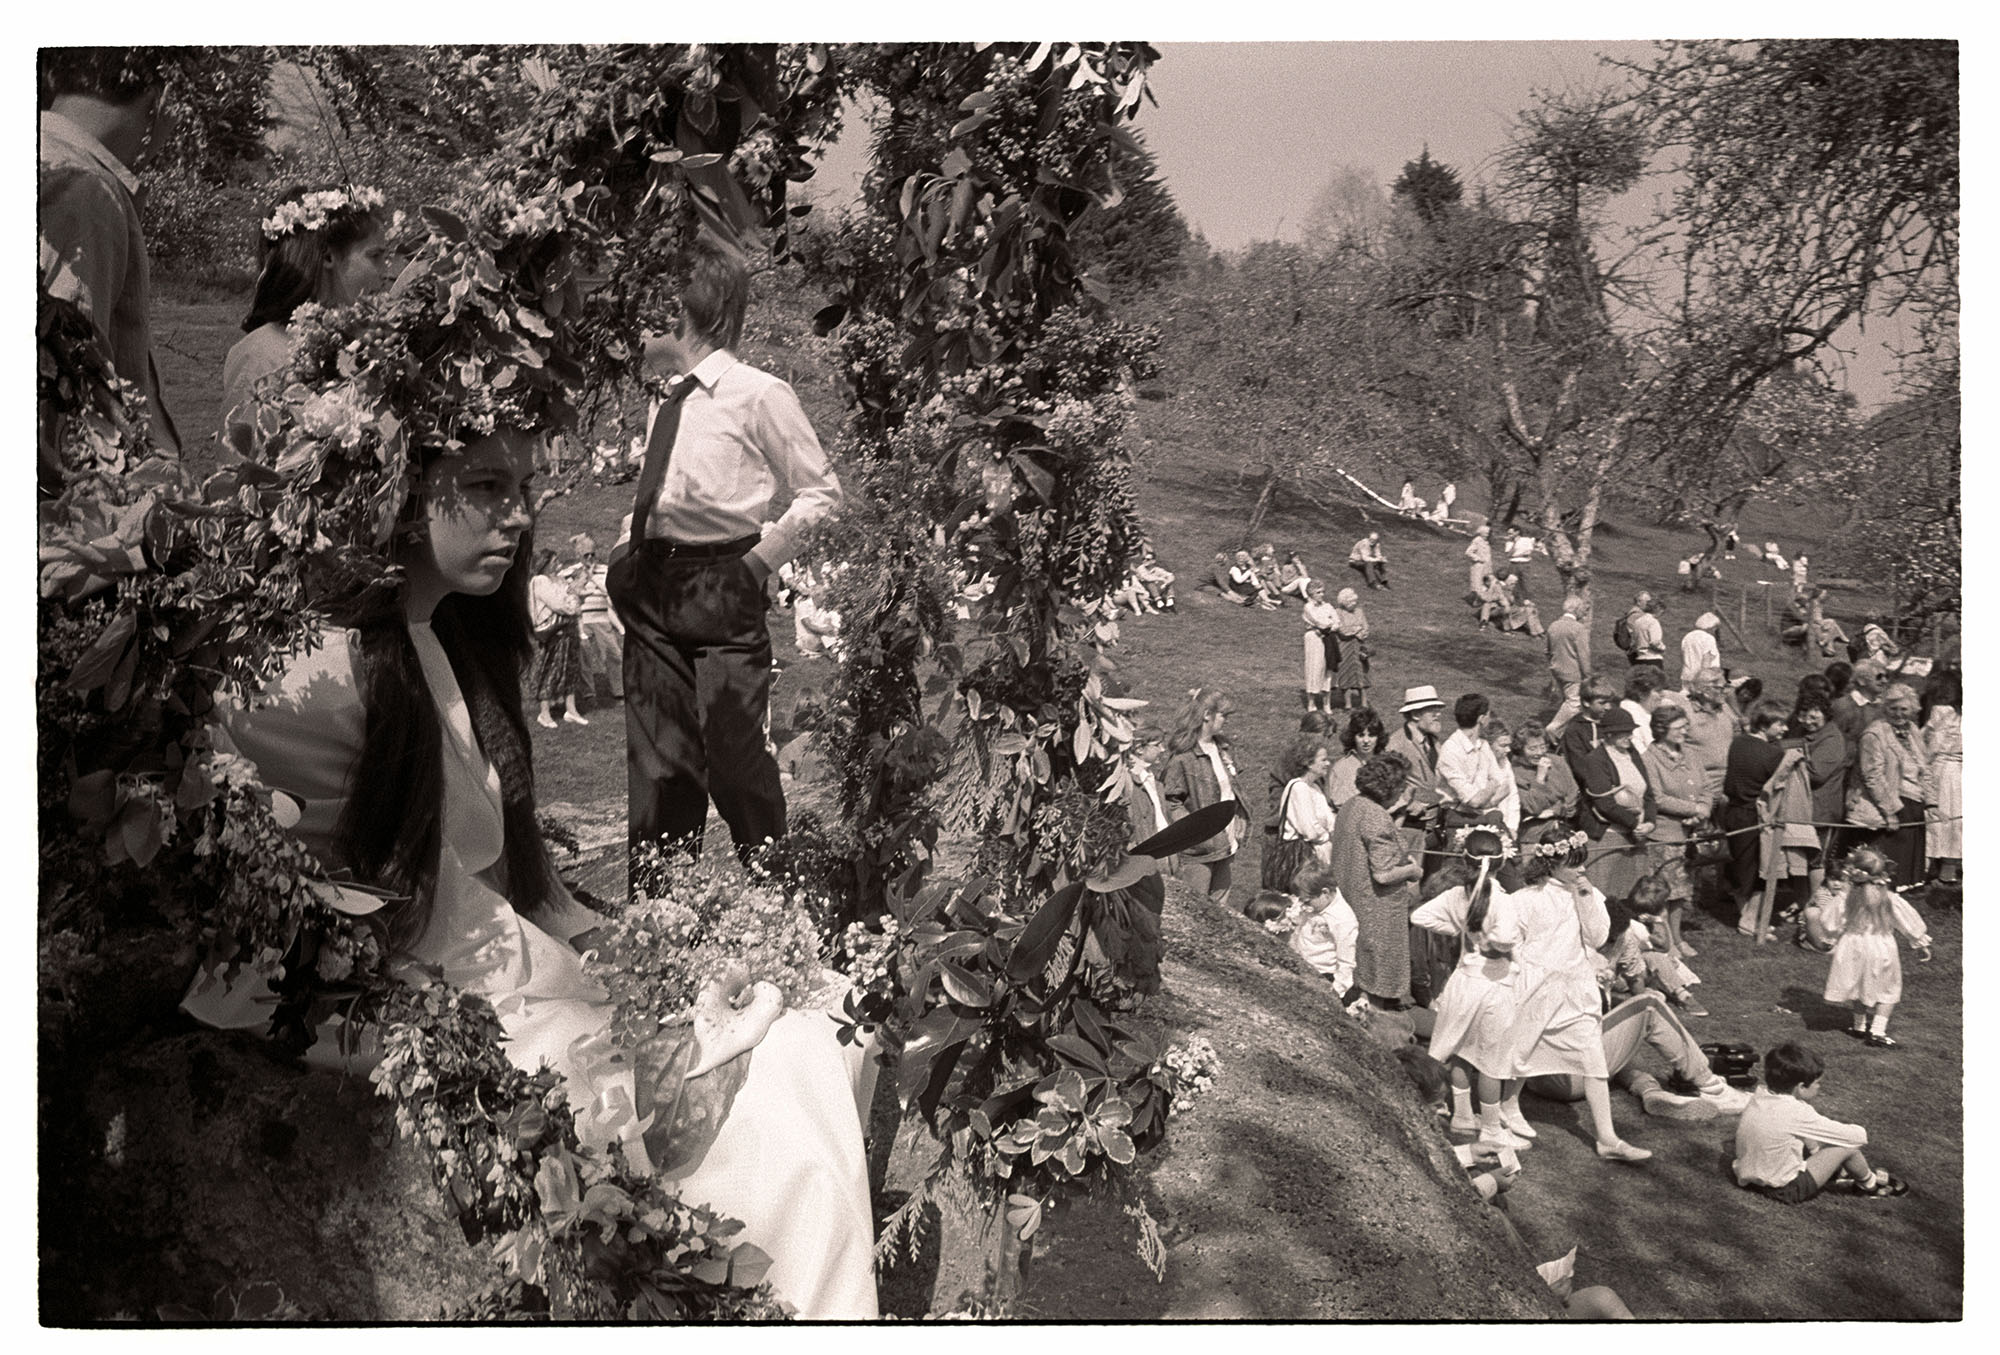 Orchards, May Queen enthroned in flower bower on rock. <br /> [May fair celebration in an orchard in Lustleigh. The May Queen is sat in a flower bower on a large rock. Spectators are stood and sat in the orchard. Some girls, possibly May Queen attendants, are wearing floral headbands.]